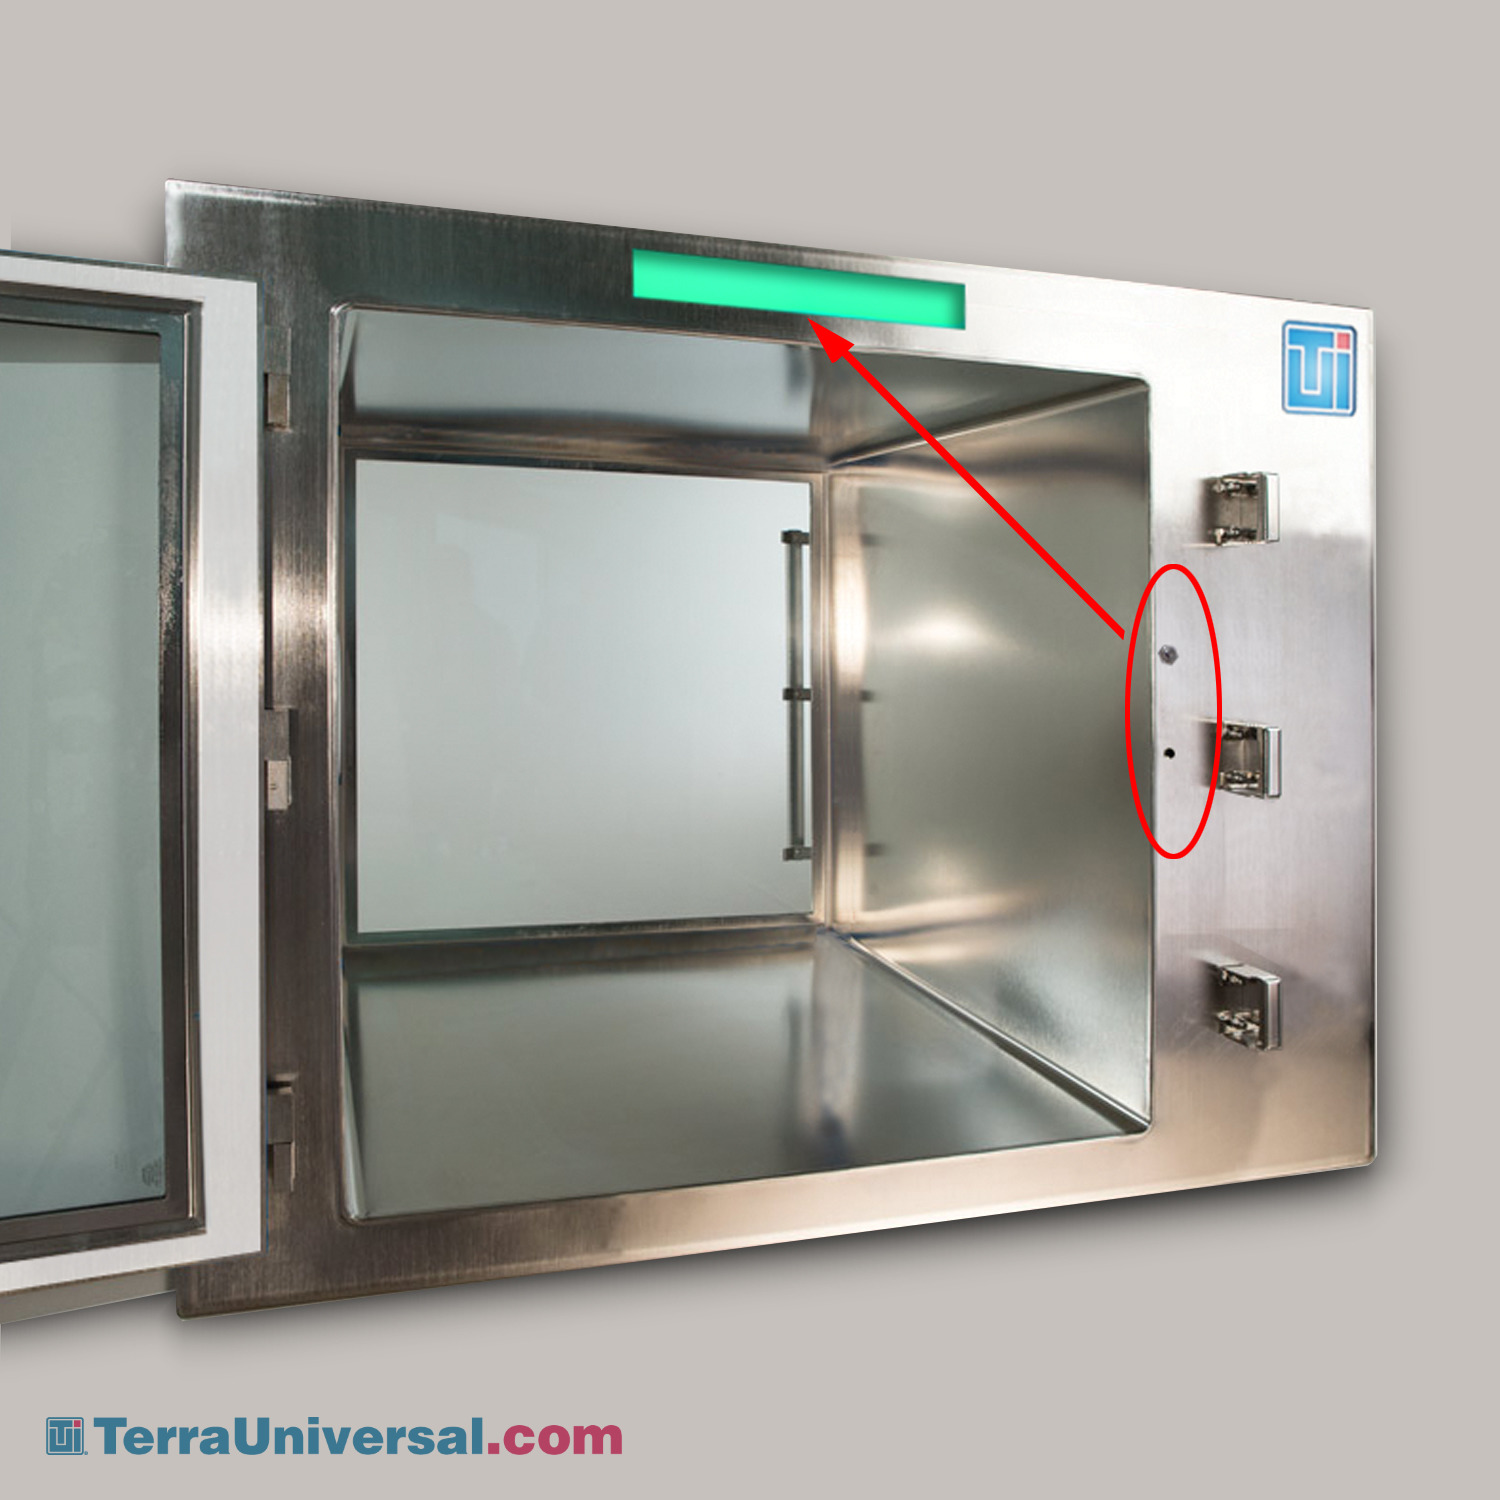 Cleanroom Components for Contractors, Architects, Engineers